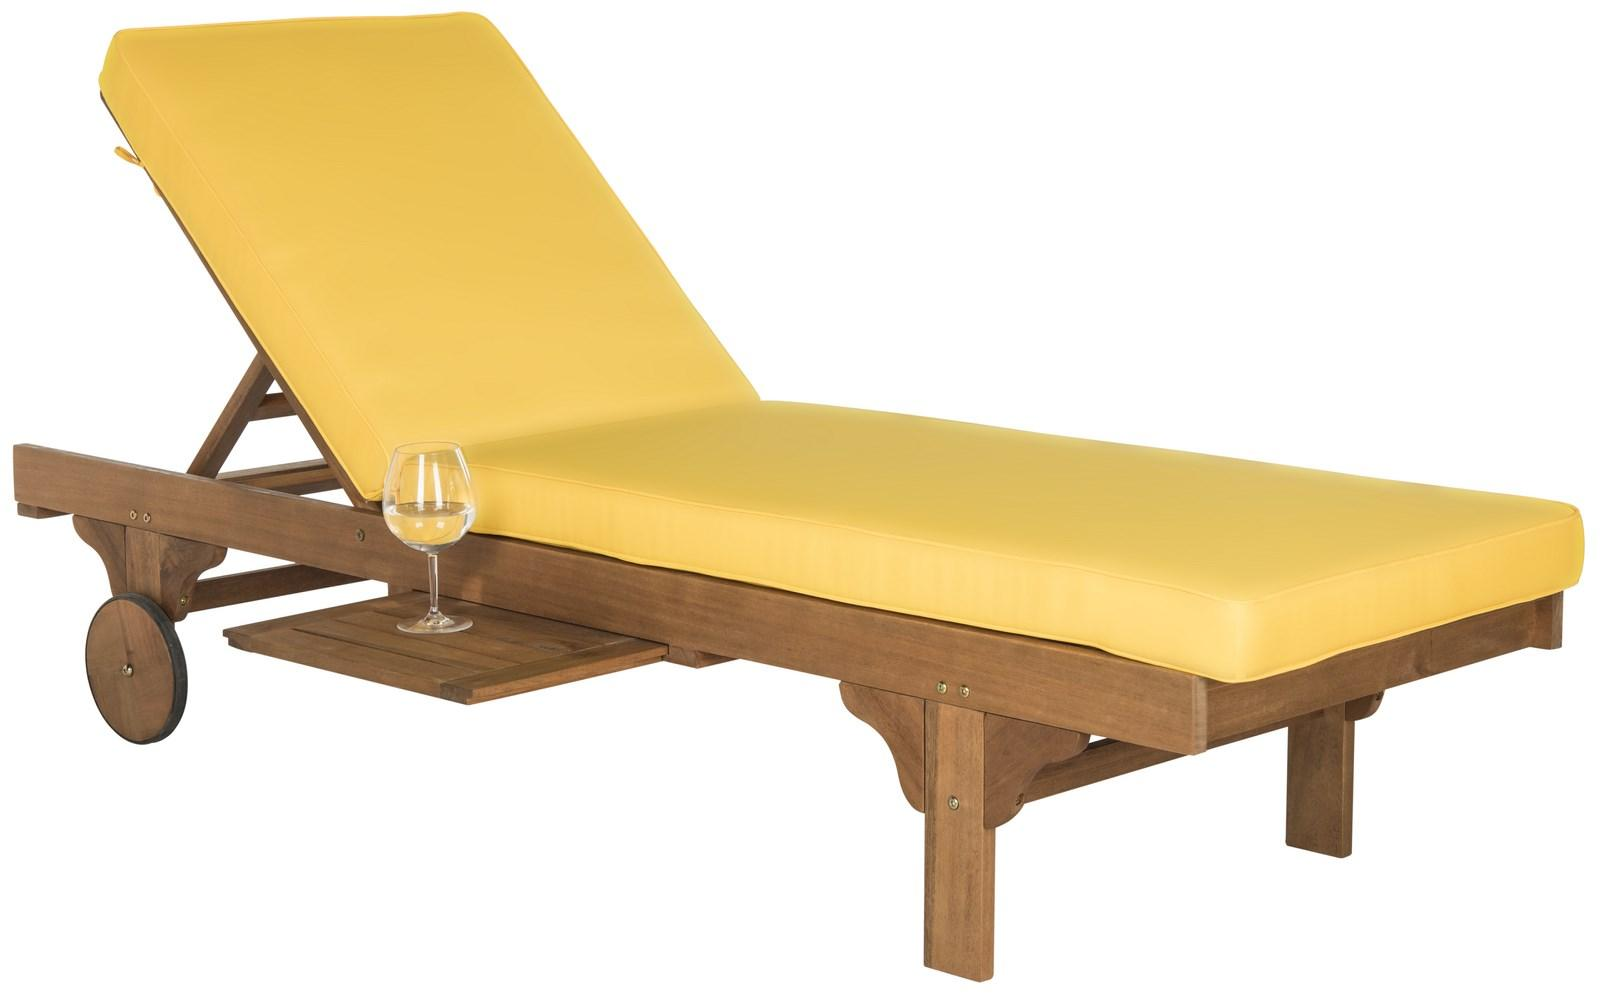 Chaise Lounge Chair | Outdoor Furnishings - Safavieh.com on bookcase with wheels, antique furniture with wheels, entertainment center with wheels, mirror with wheels, chest with wheels, bedroom furniture with wheels, trunk with wheels, bench with wheels, chair with wheels, stool with wheels, storage with wheels, outdoor furniture with wheels, bar with wheels, desk with wheels, cabinet with wheels, kitchen furniture with wheels, coat rack with wheels, footstool with wheels, couch with wheels, bed with wheels,